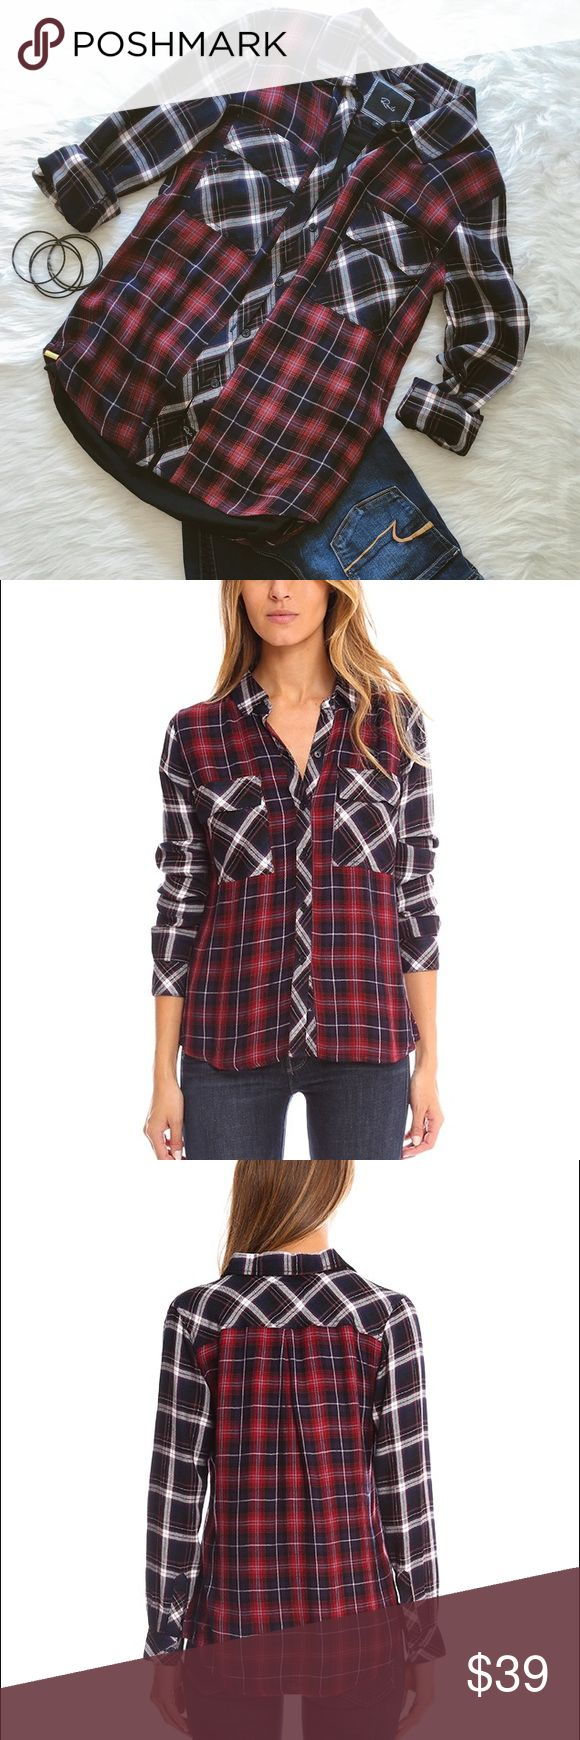 Rails Hunter Button Down XS Rails hunters button down. Size is X-small. The model is 5'9 wearing a size small. EUC.❌ No Trades ❌ No off Poshmark transactions ❤️ Bundle and save  Fast shipper ❤️ I love reasonable offers Rails Tops Button Down Shirts